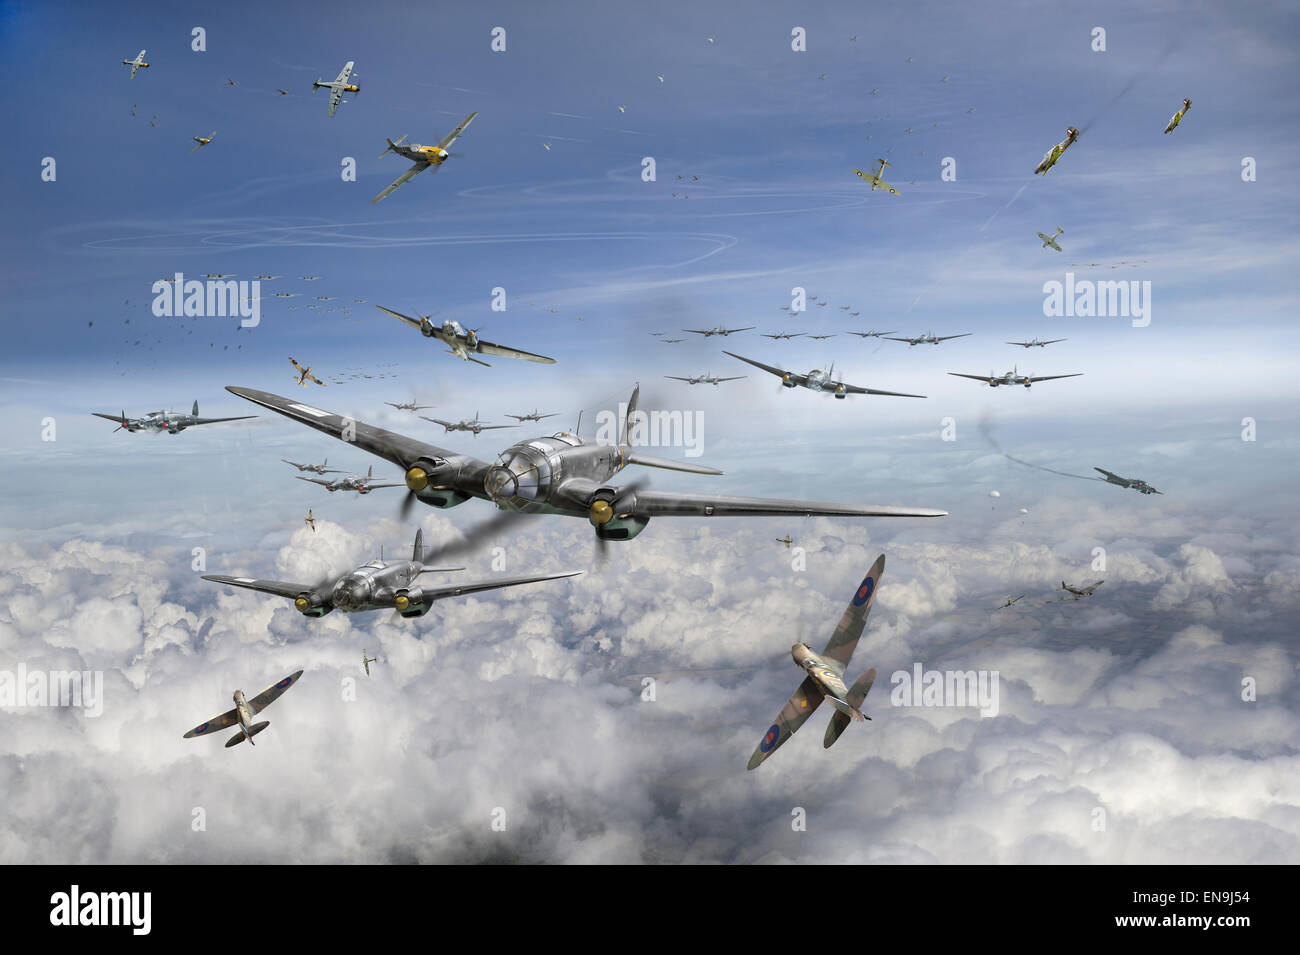 Battle of britain date in Australia